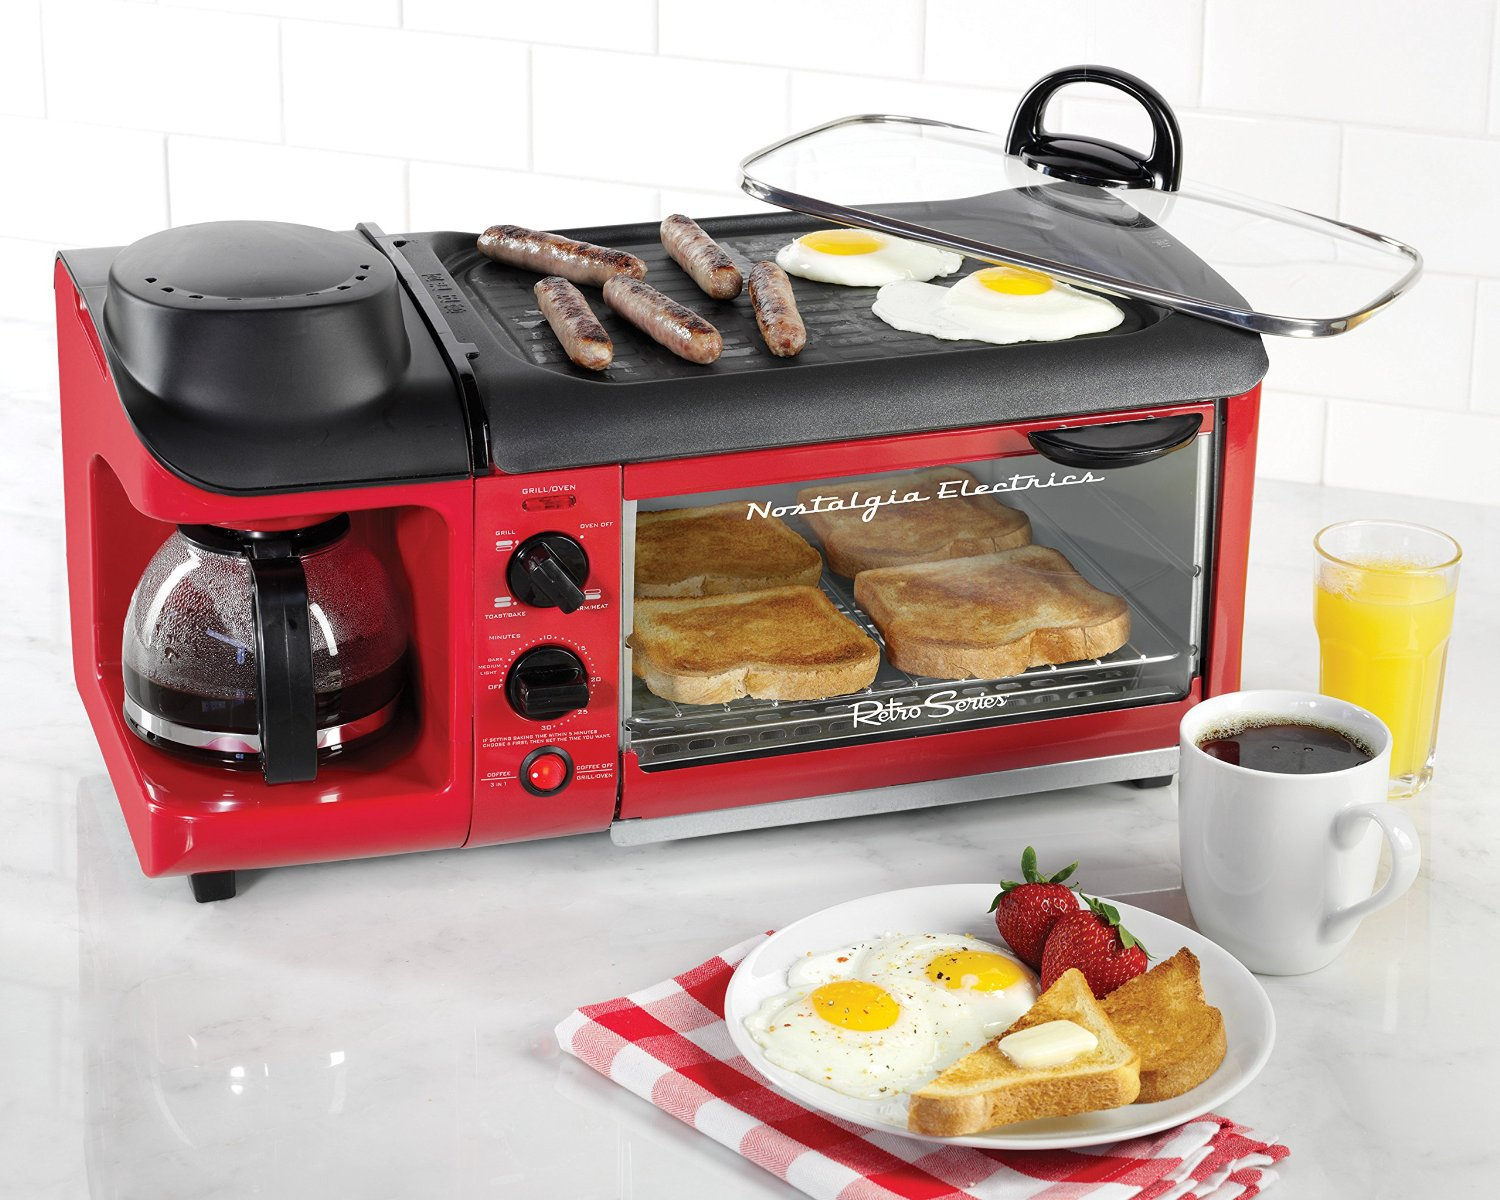 kitchen-tools-retro-series-3-in-1-family-size-breakfast-station